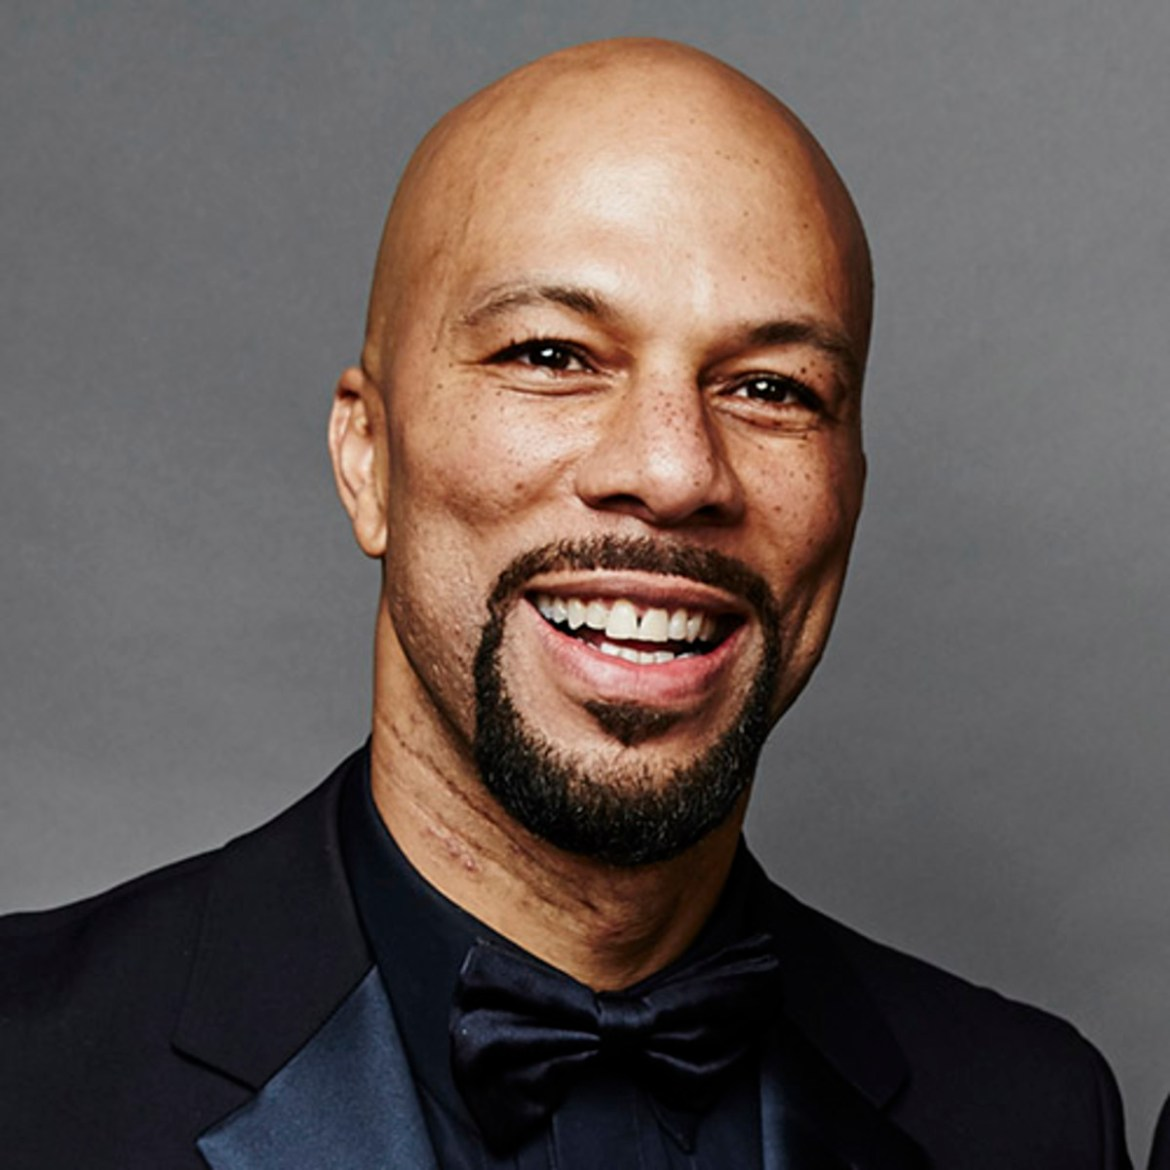 Common hopes to bring change with his new documentary series 'Justice USA'